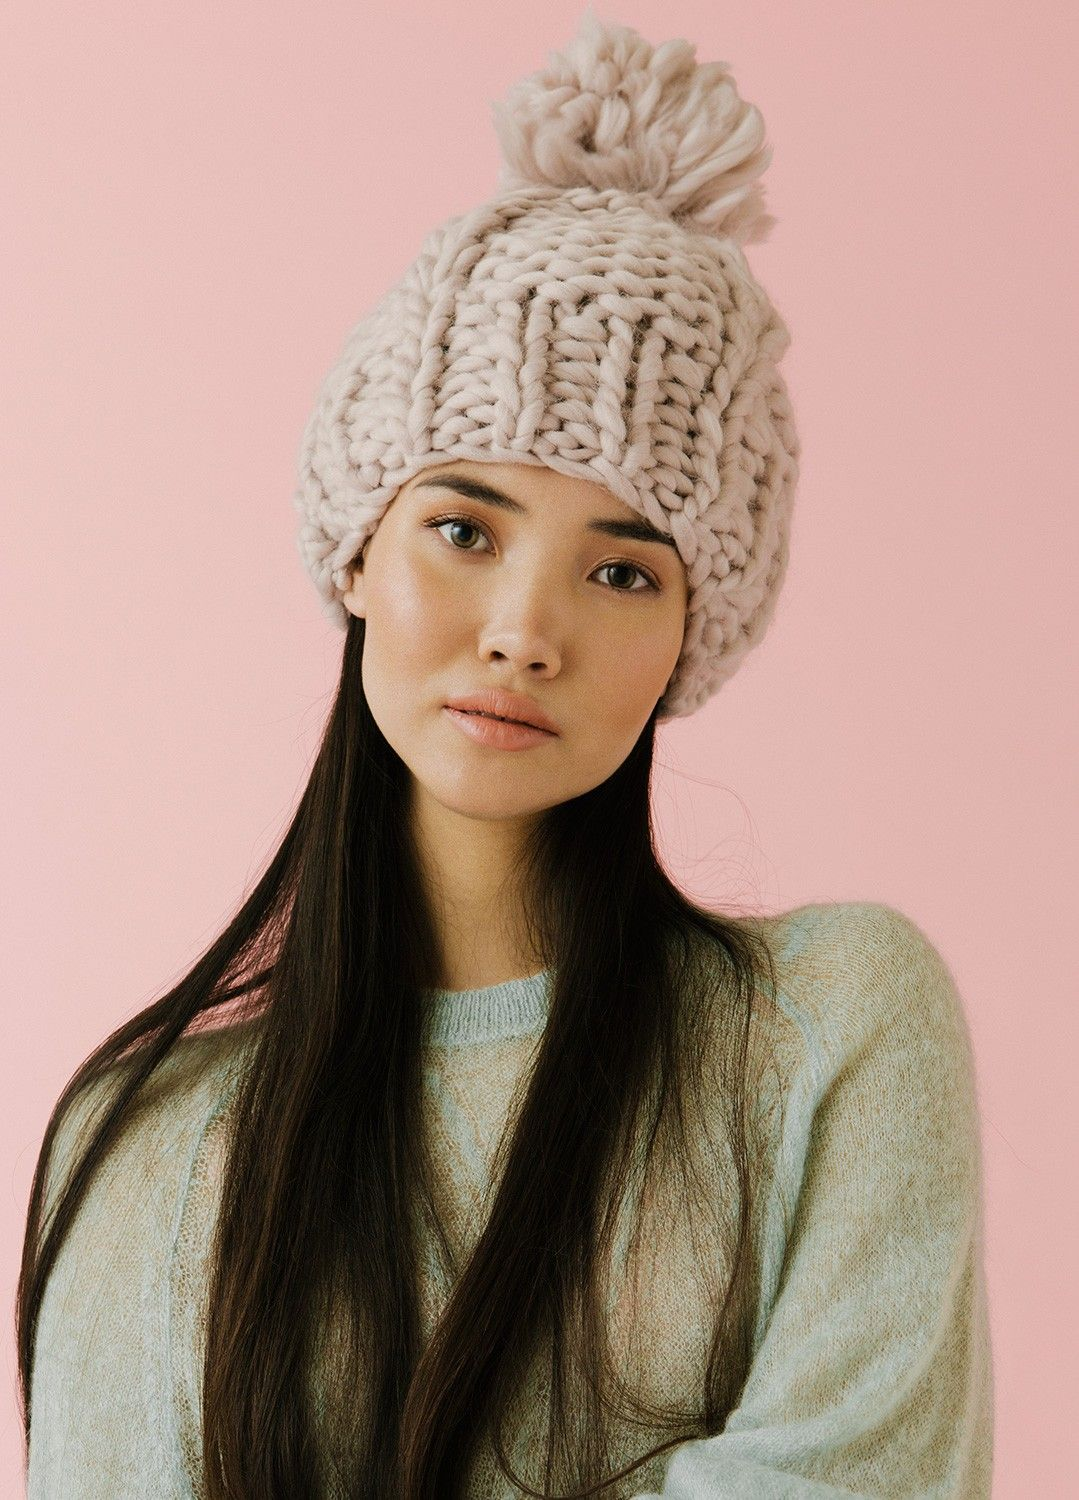 Harney Beanie Beanies Knitted Hats Knitting Kits Vogue Knitting